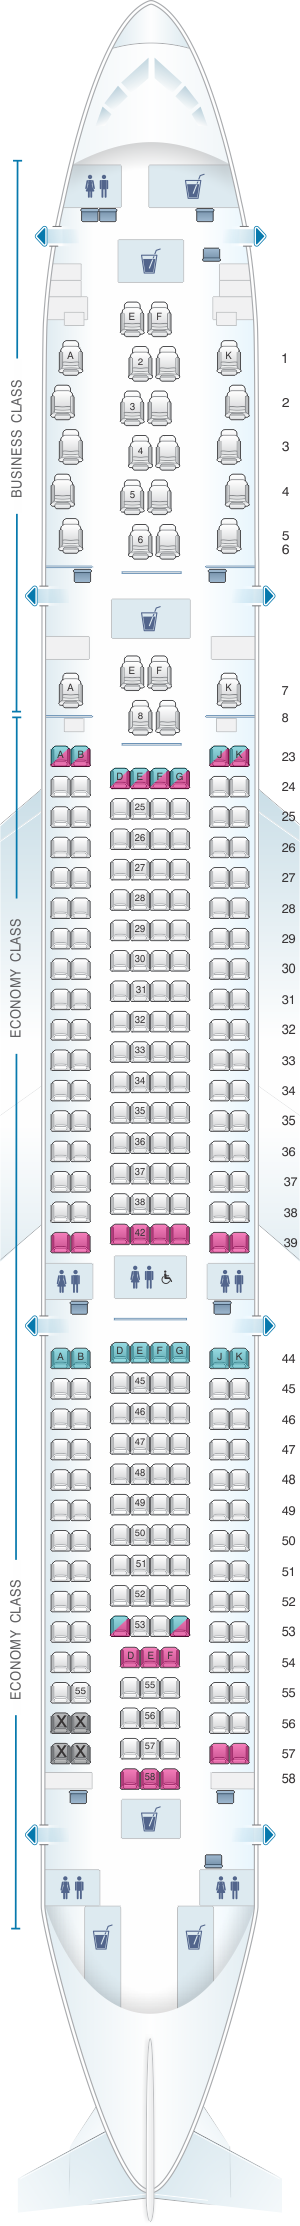 Seat map for Qantas Airways Airbus A330 200 Domestic 271PAX